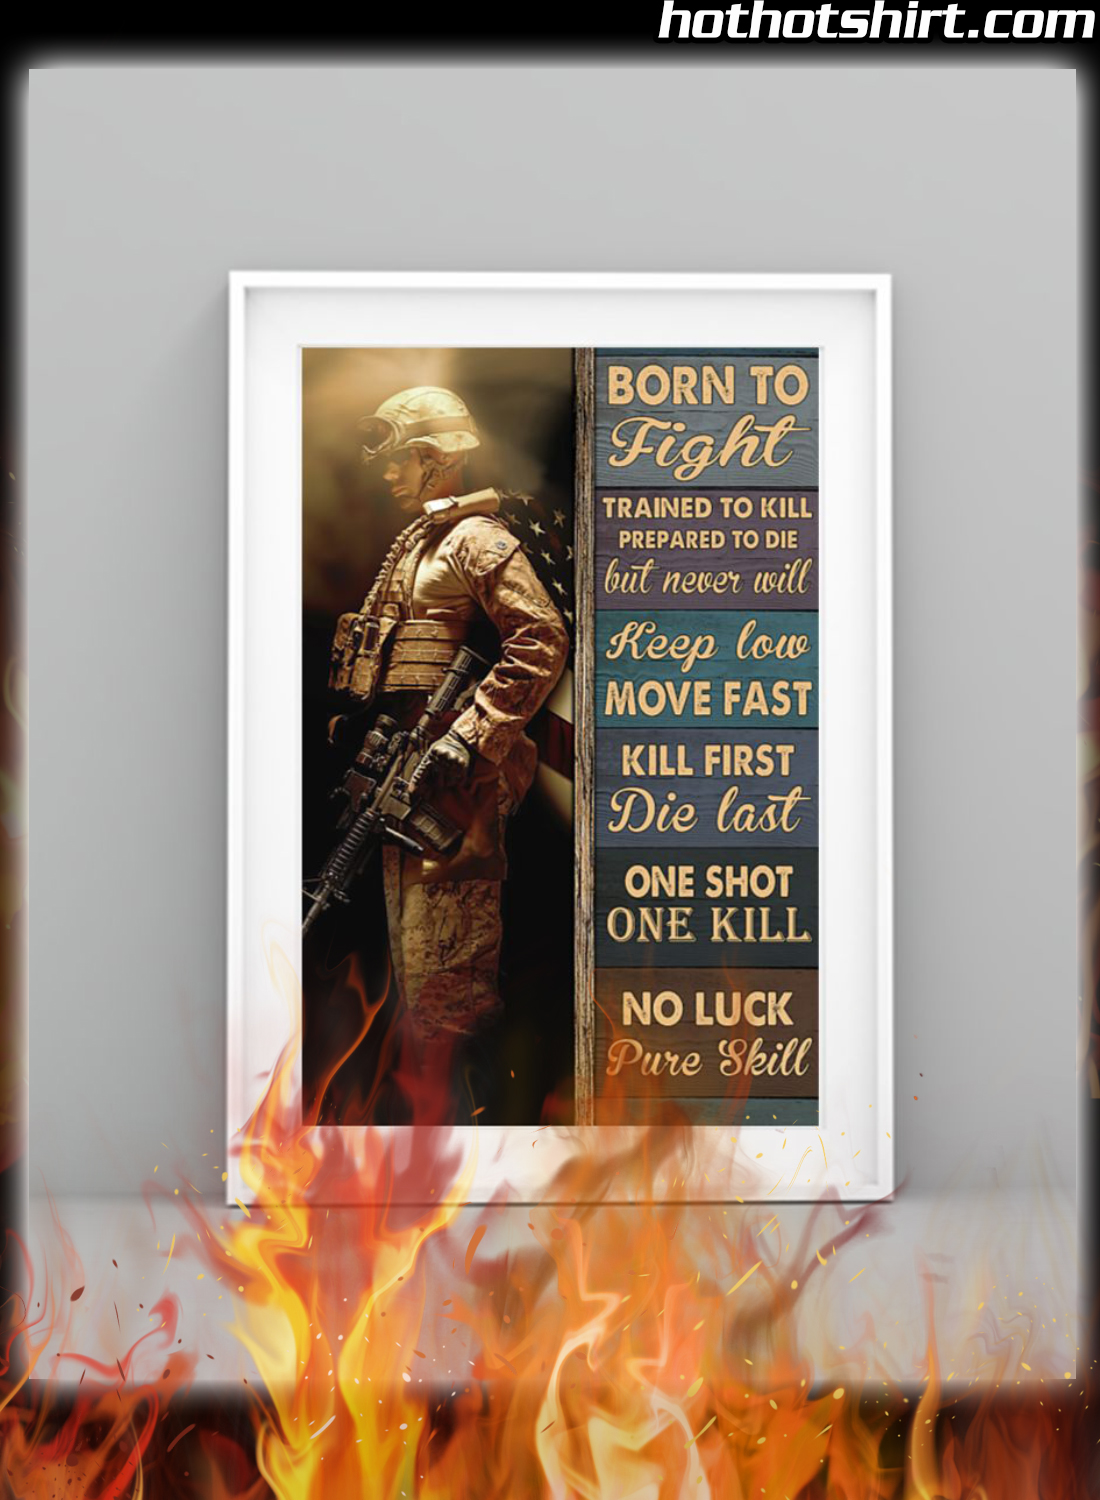 Veteran Born To Fight Trained To Kill Prepared To Die Poster 3